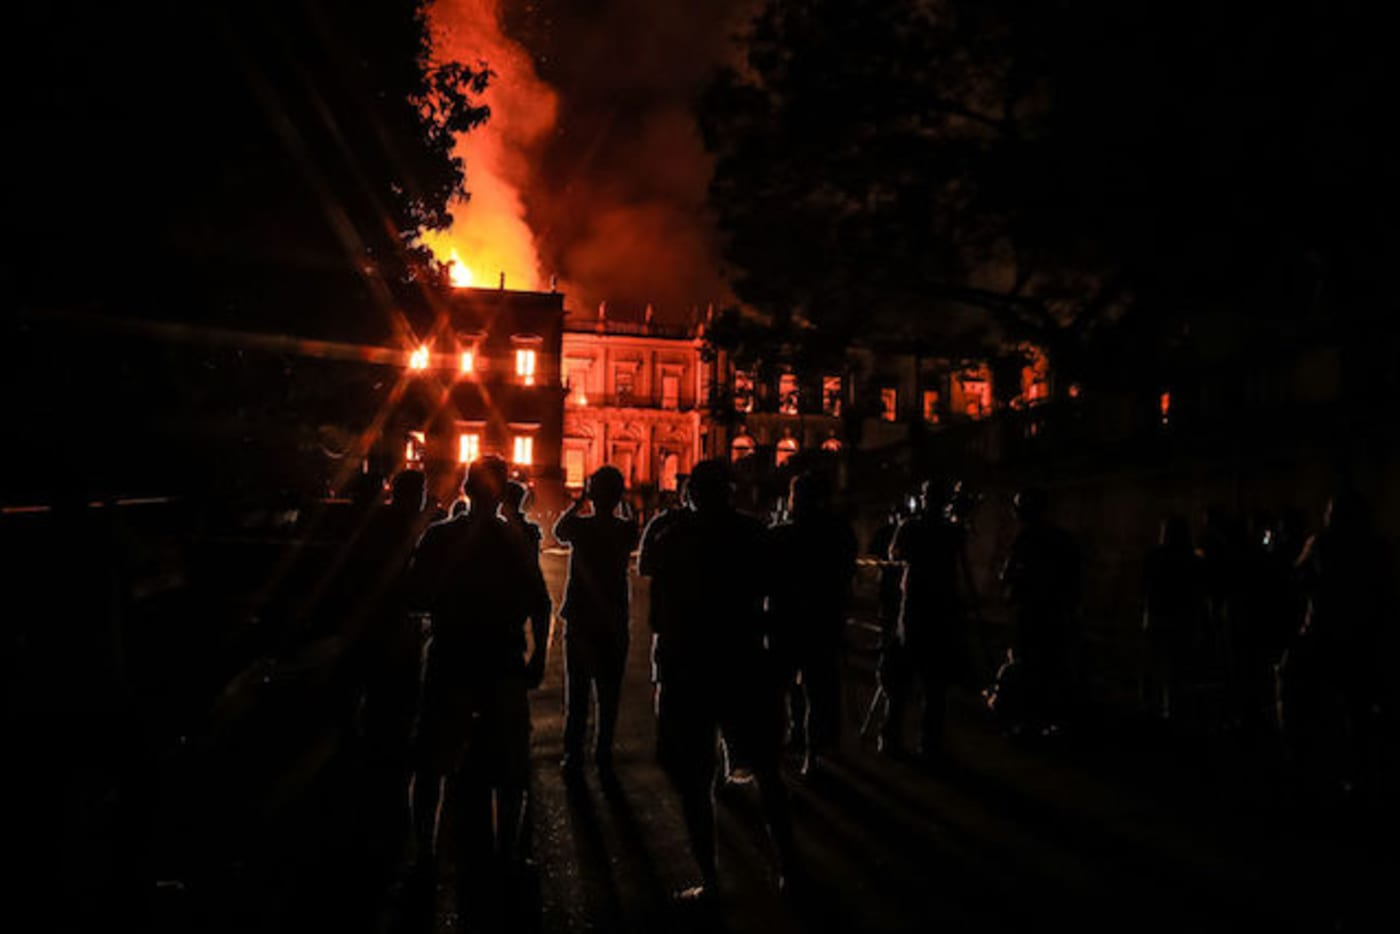 This is a picture of a museum on fire.